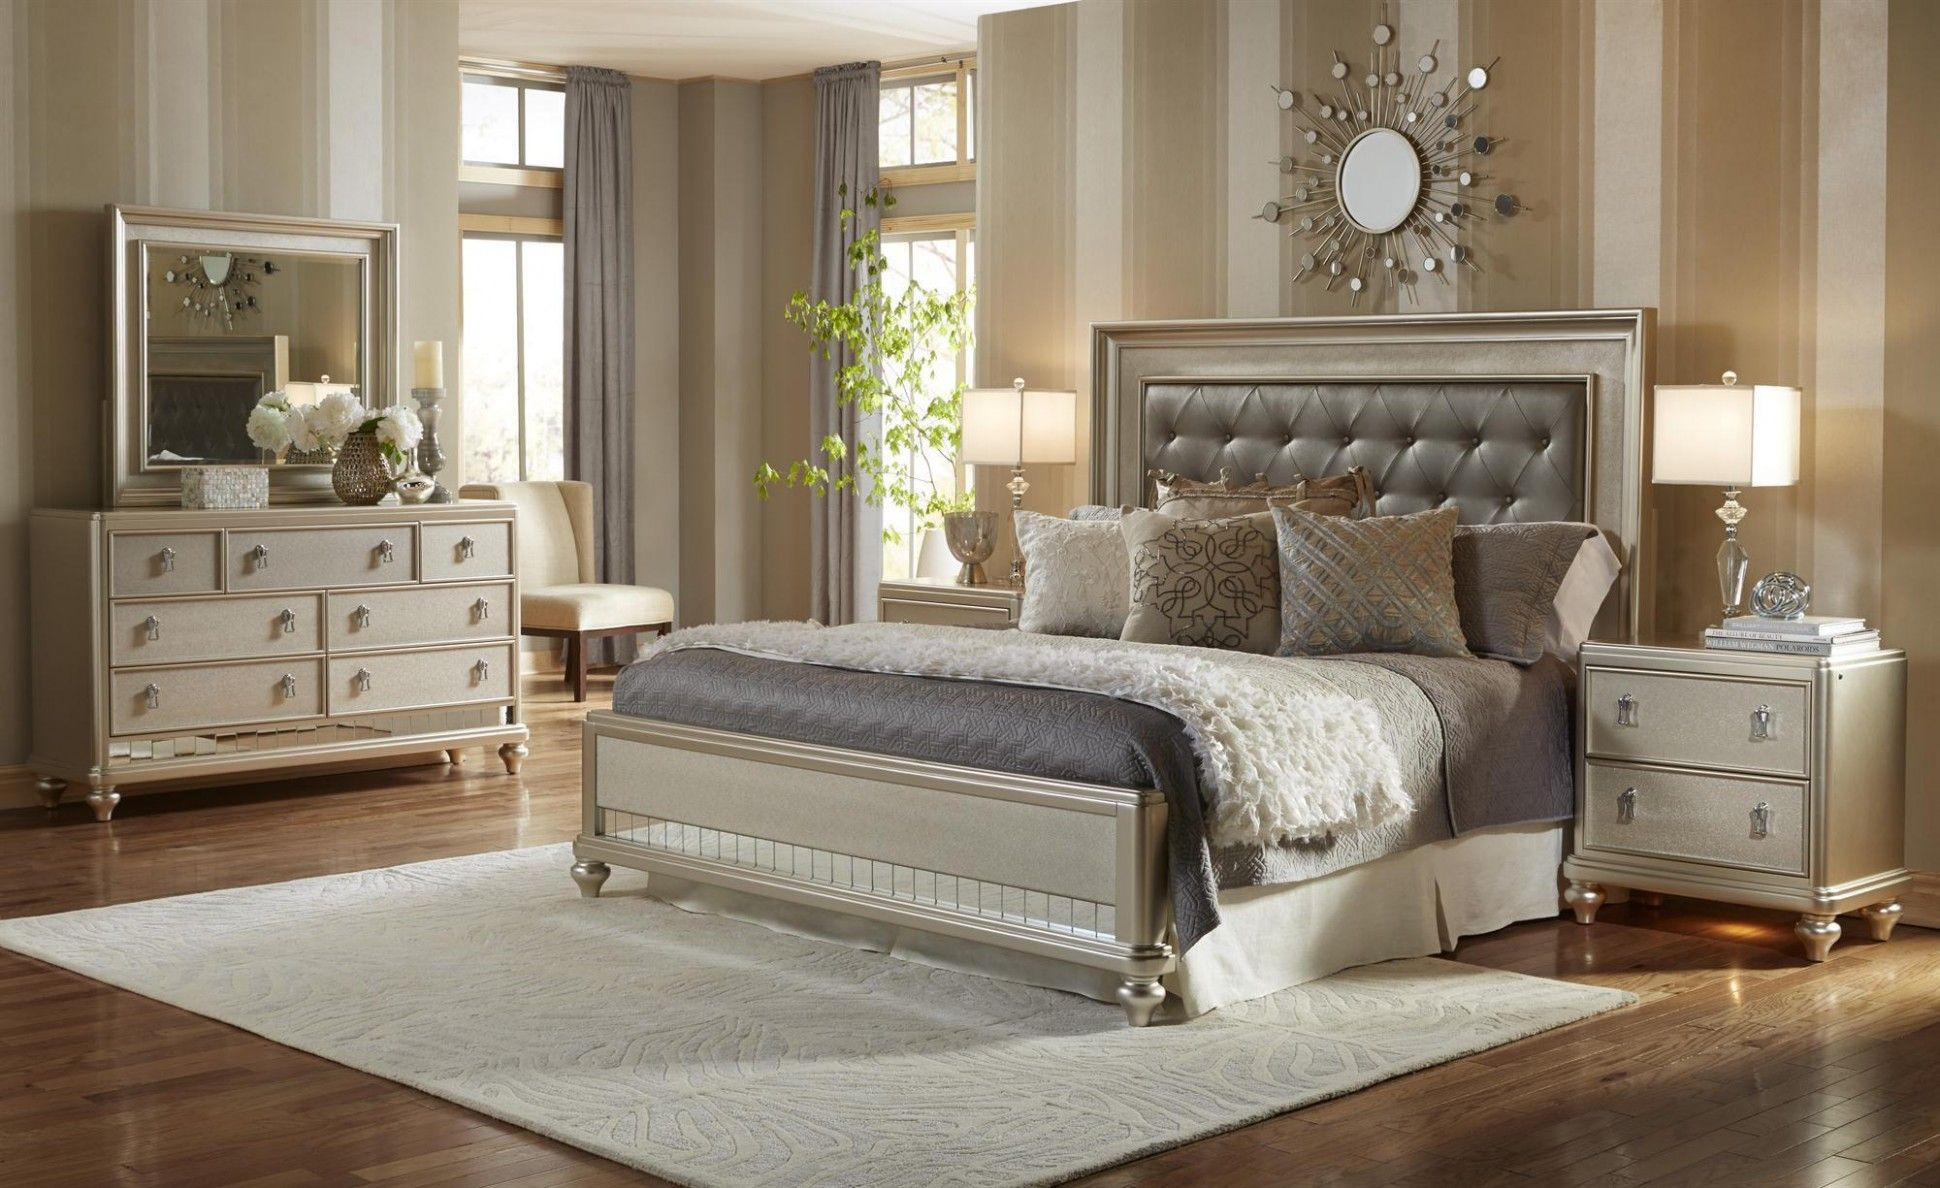 Bedroom Sets Canada in 4  Bedroom design, Luxurious bedrooms